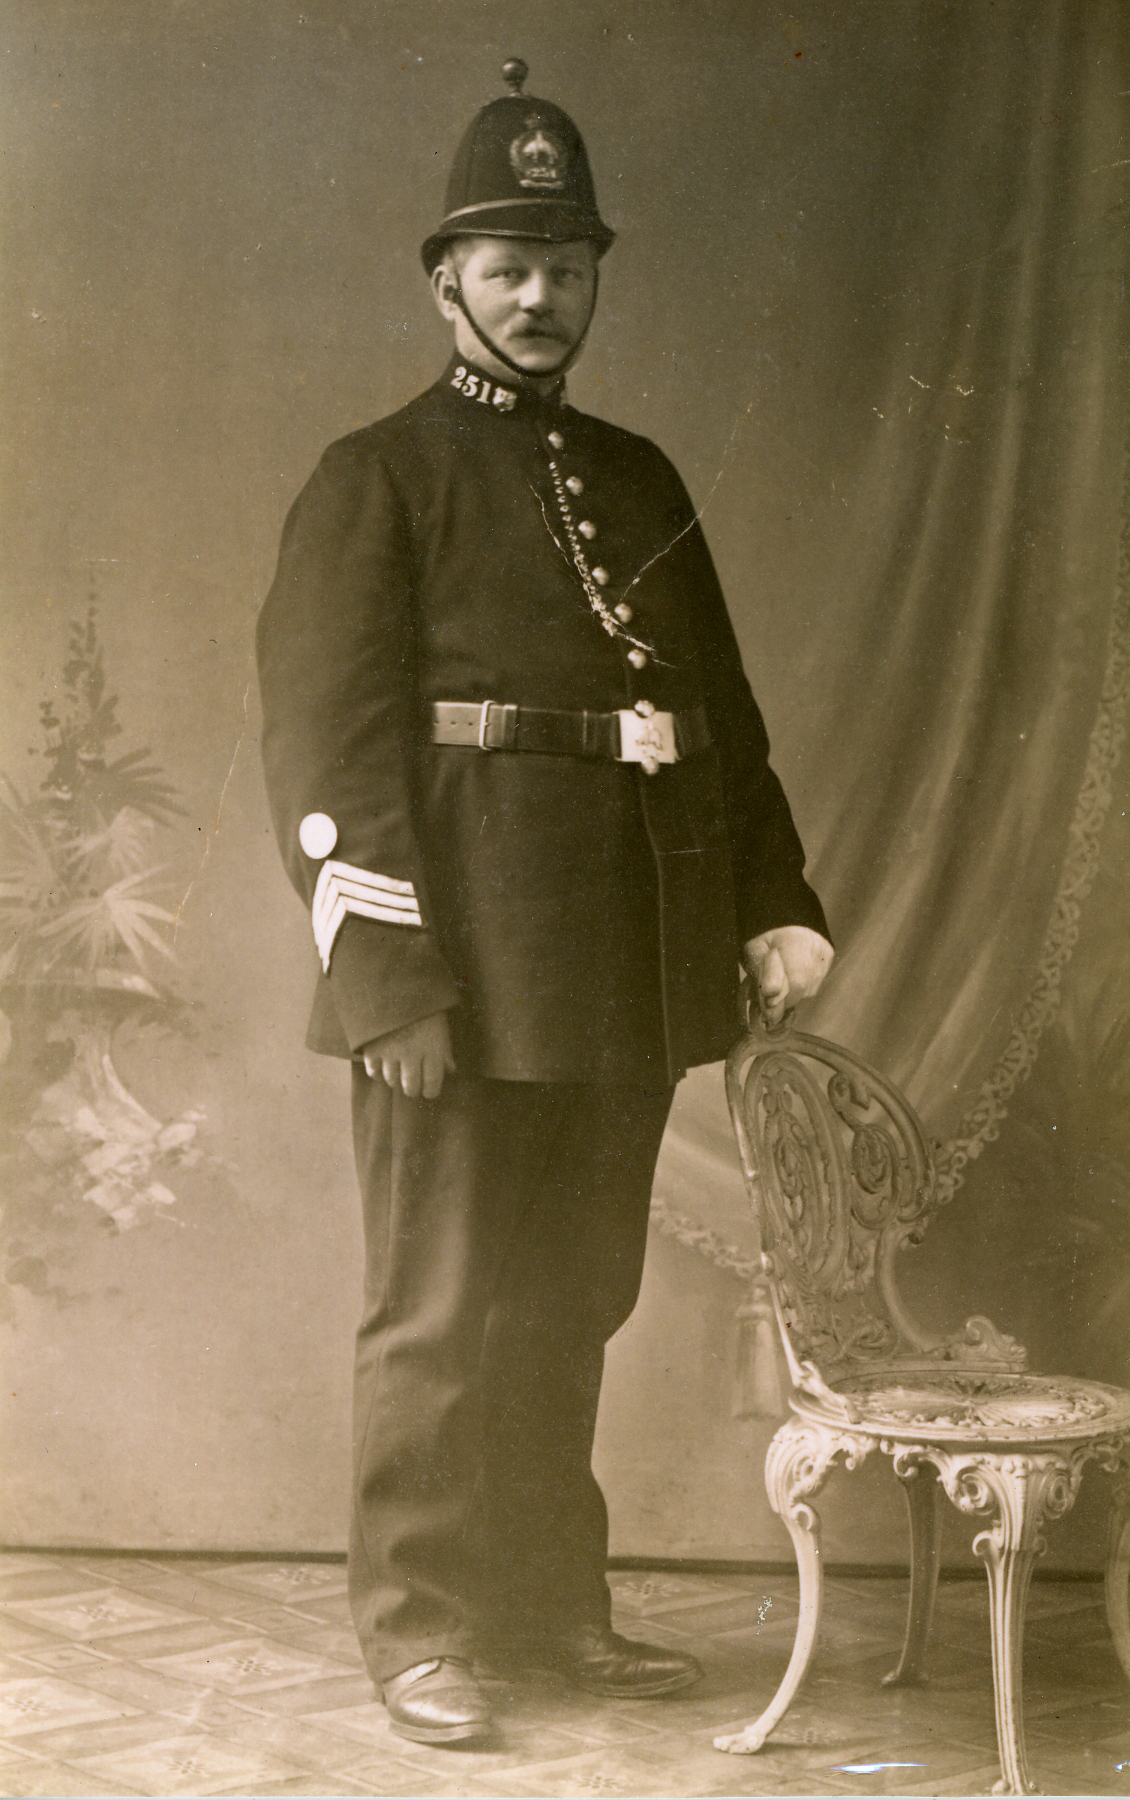 Photograph shows John Horner in police unifrom with a tall helmet.  Three chevrons on his sleeve indicate he is a sergeant.